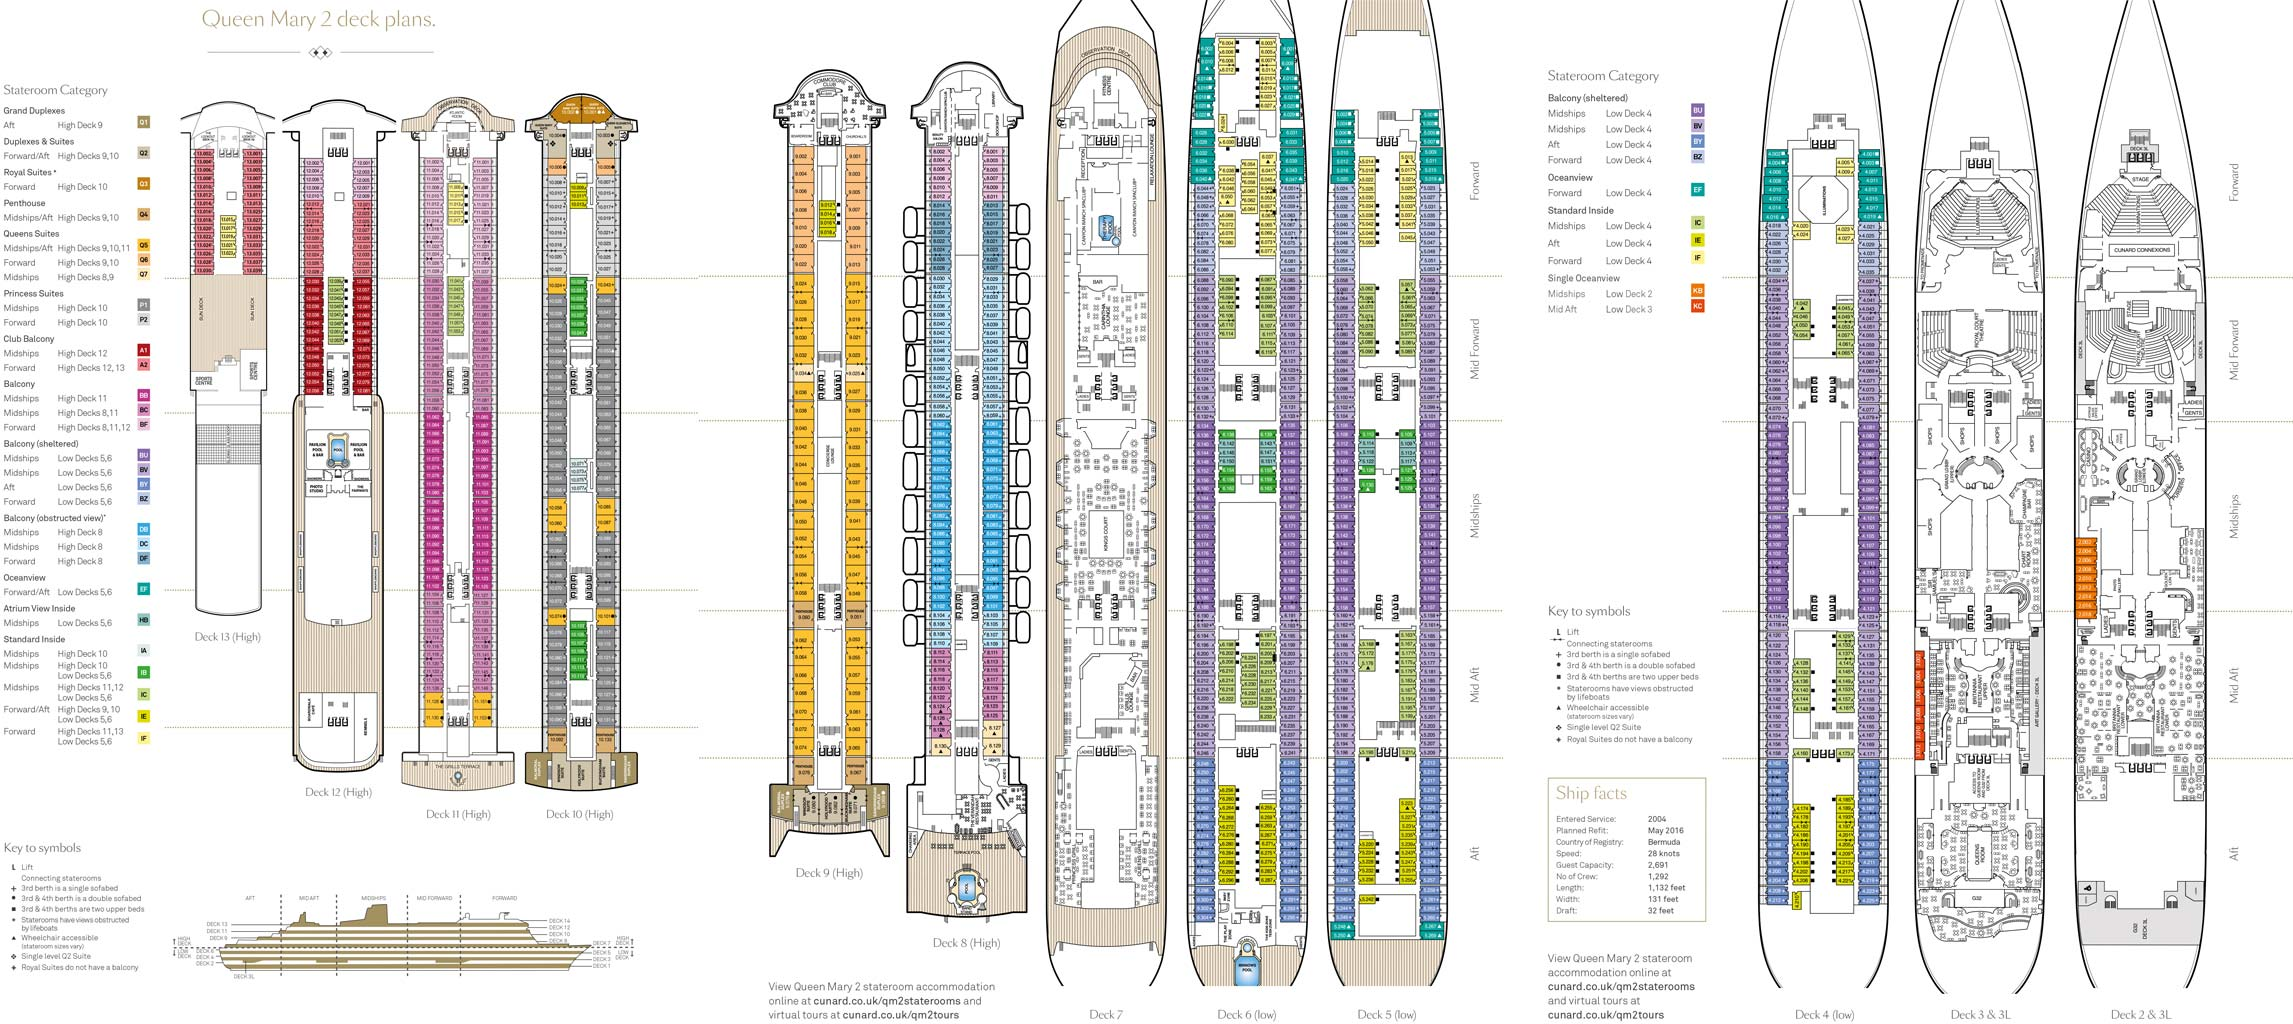 Queen mary floor plan photo qm2 deck plan images photo for Ground level deck plans pdf